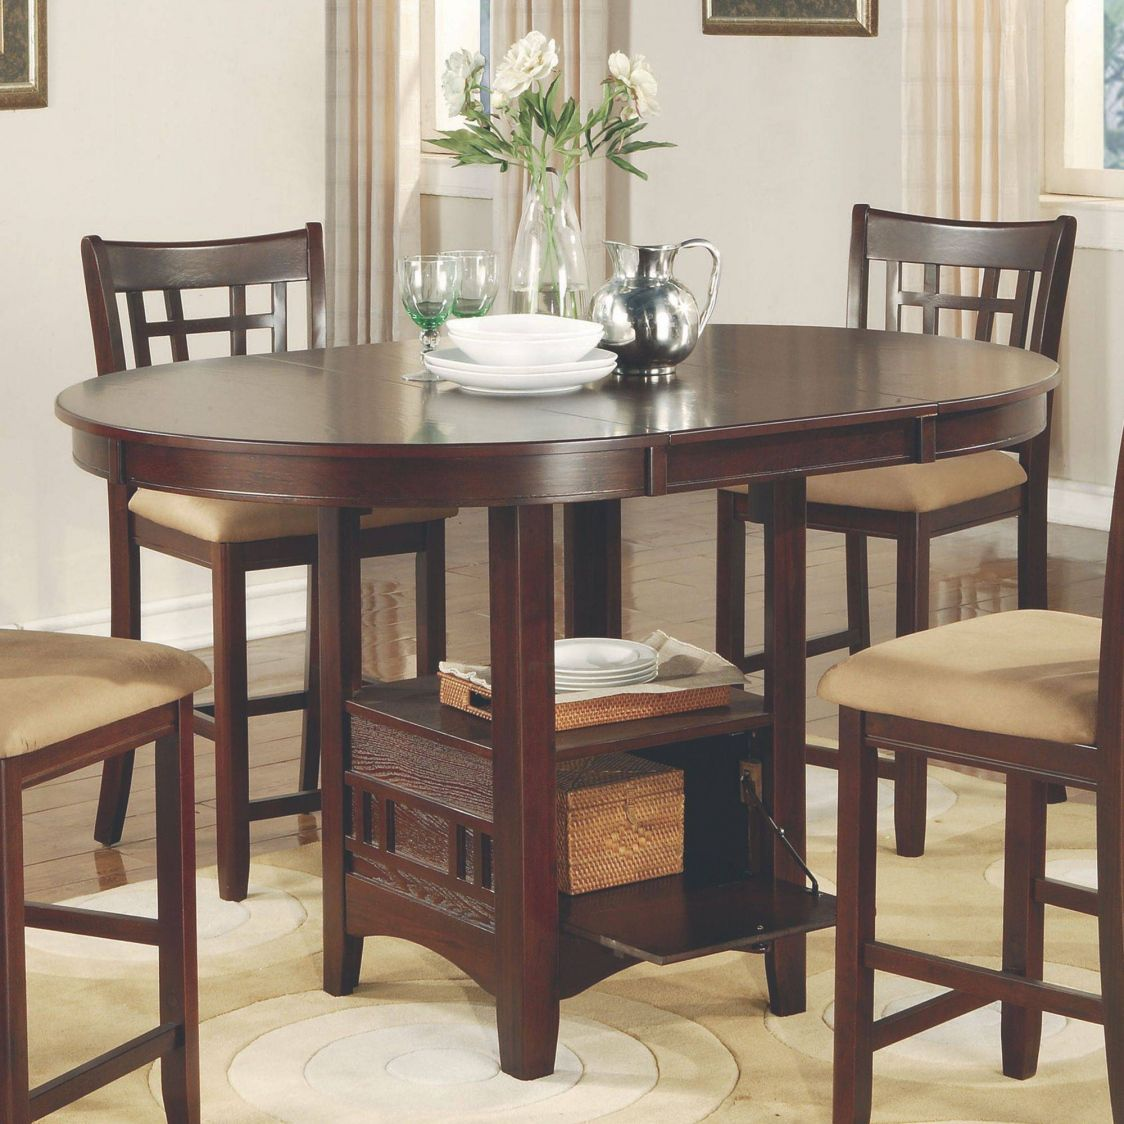 Round counter height kitchen tables chairs choosing your kitchen seats depends on the way you wish to utilize them and als